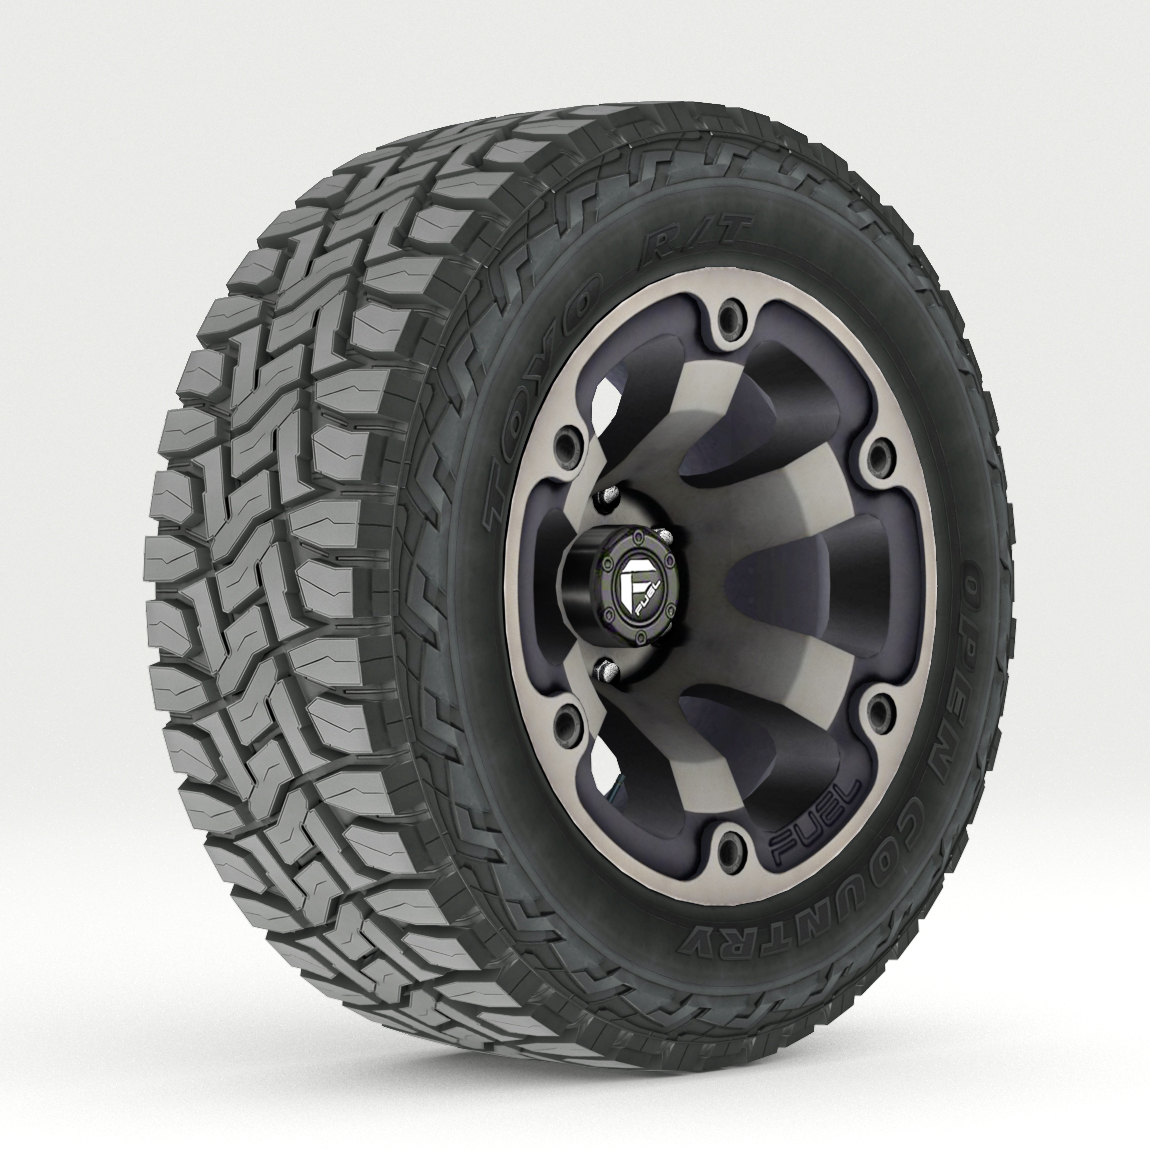 off road wheel and tire 2 3d model 3ds max fbx tga targa icb vda vst pix obj 224412